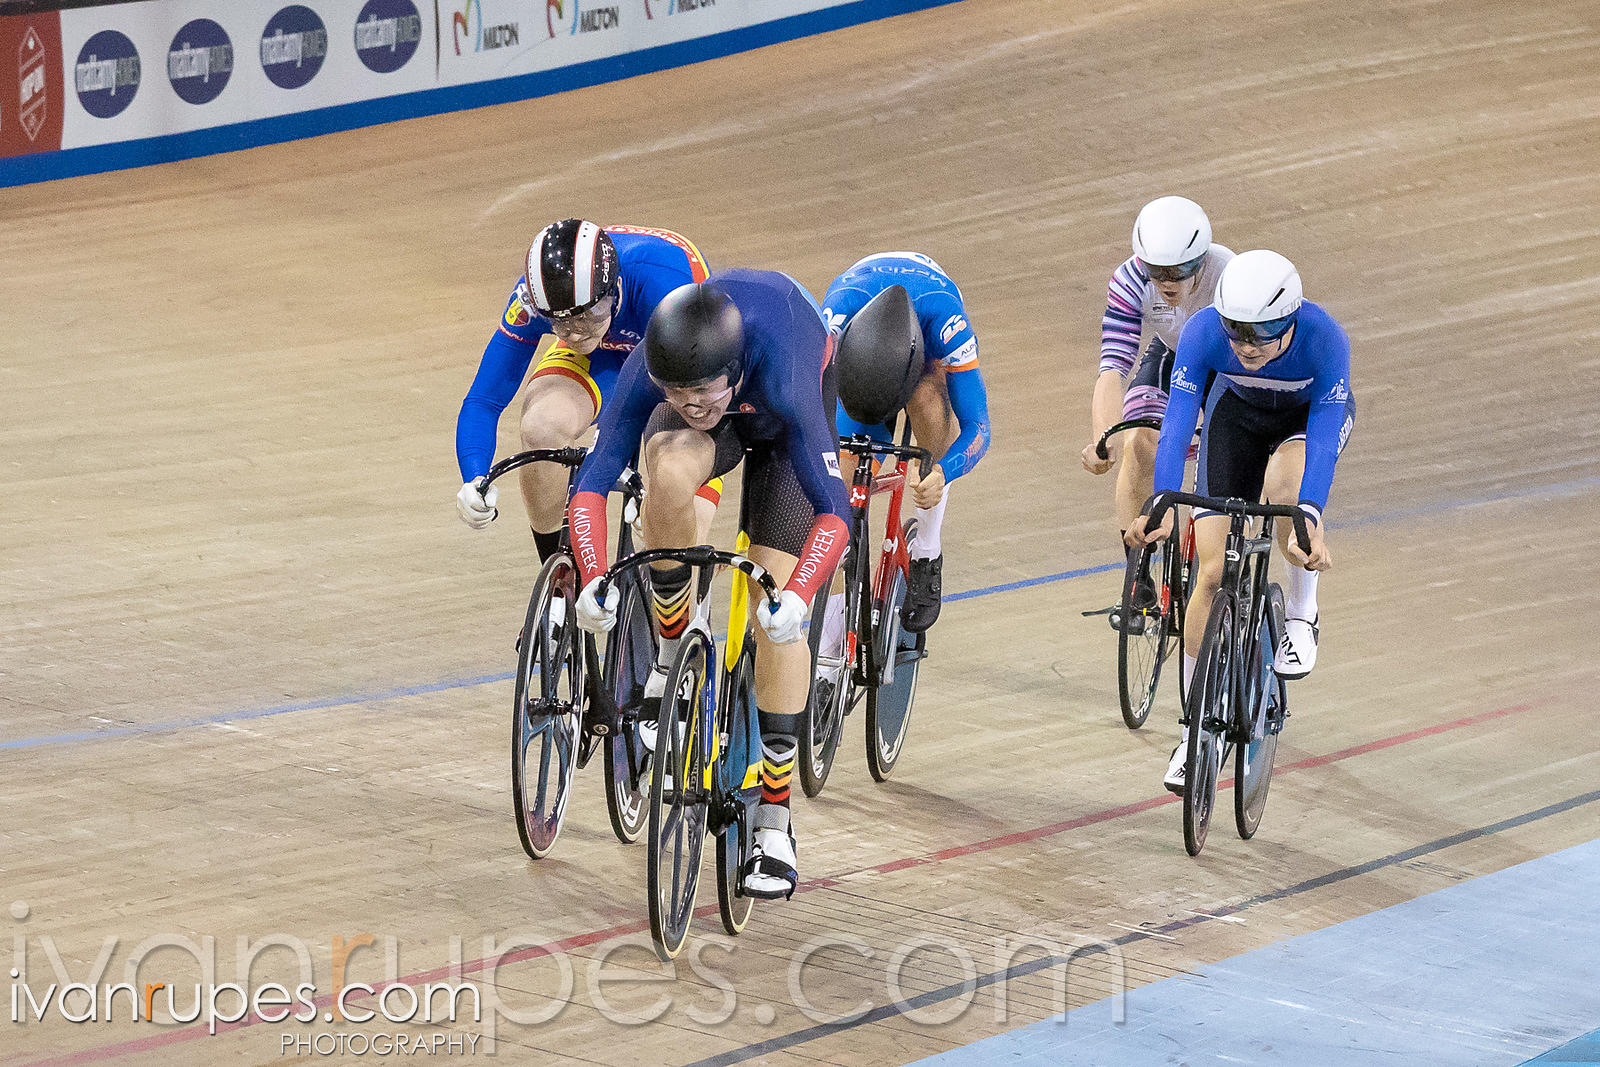 Ontario Track Championships, March 3, 2019